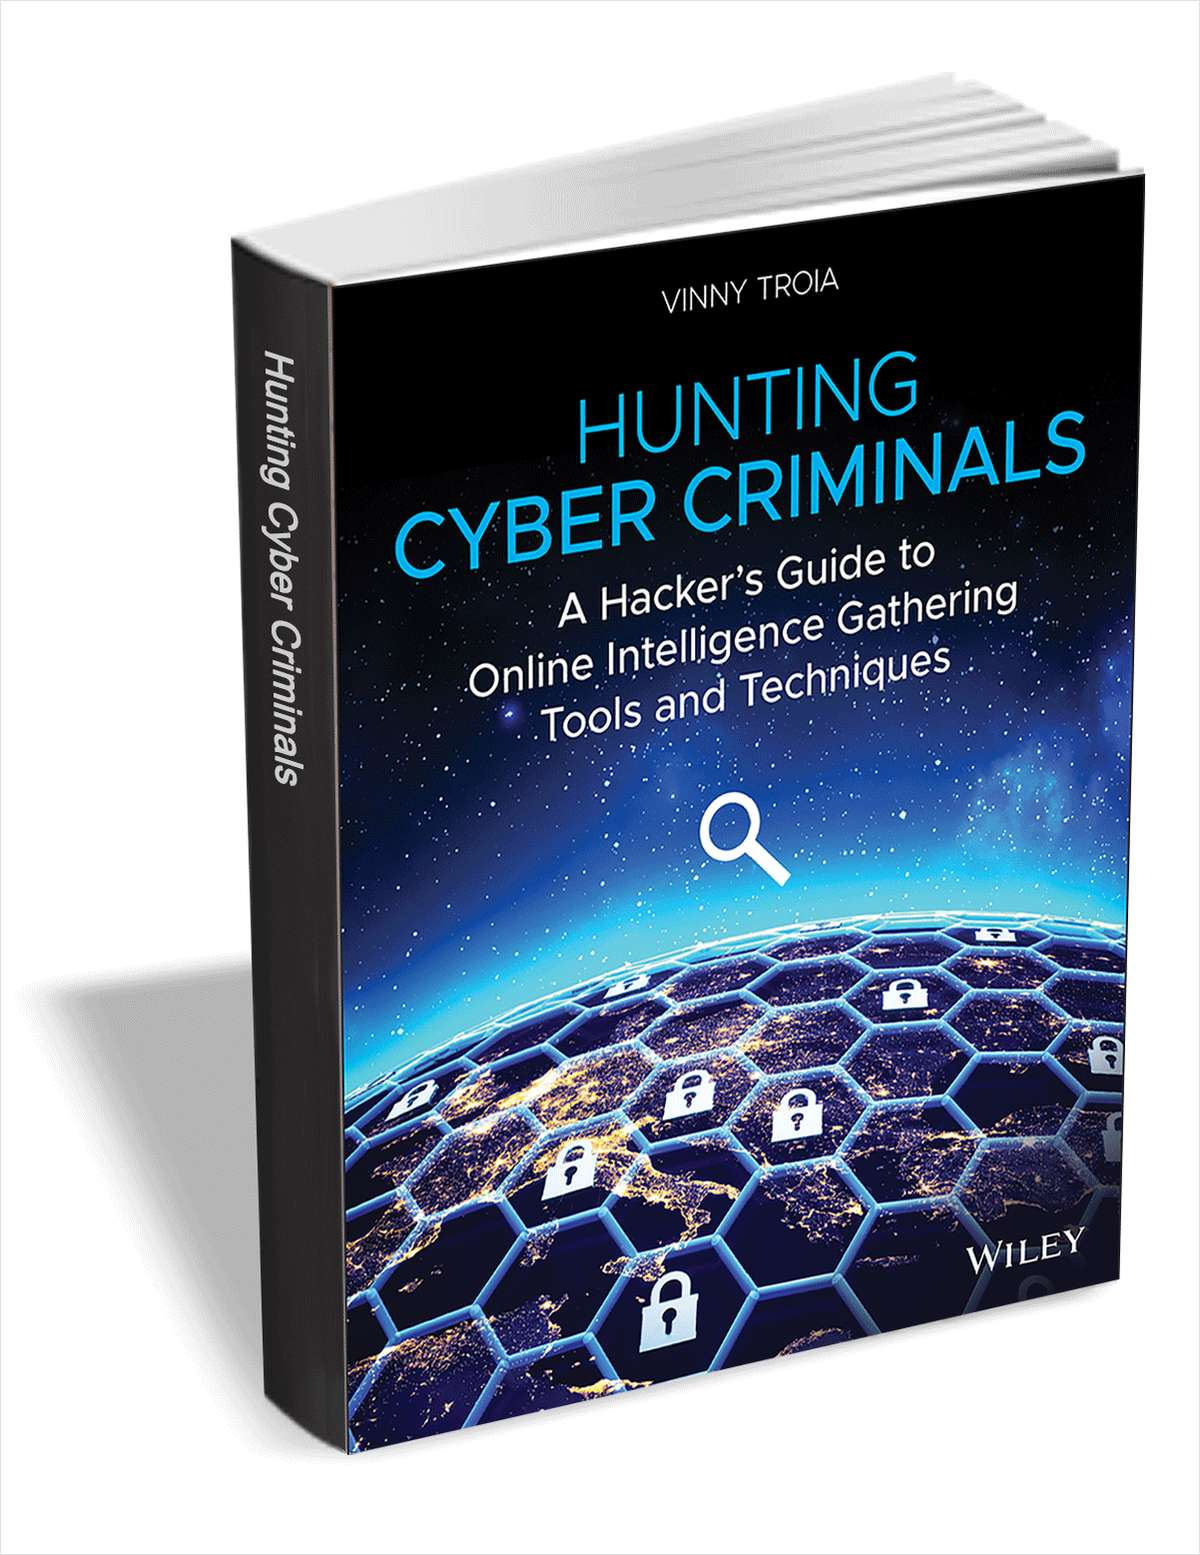 Hunting Cyber Criminals: A Hacker's Guide to Online Intelligence Gathering Tools and Techniques ($24.00 Value) FREE for a Limited Time